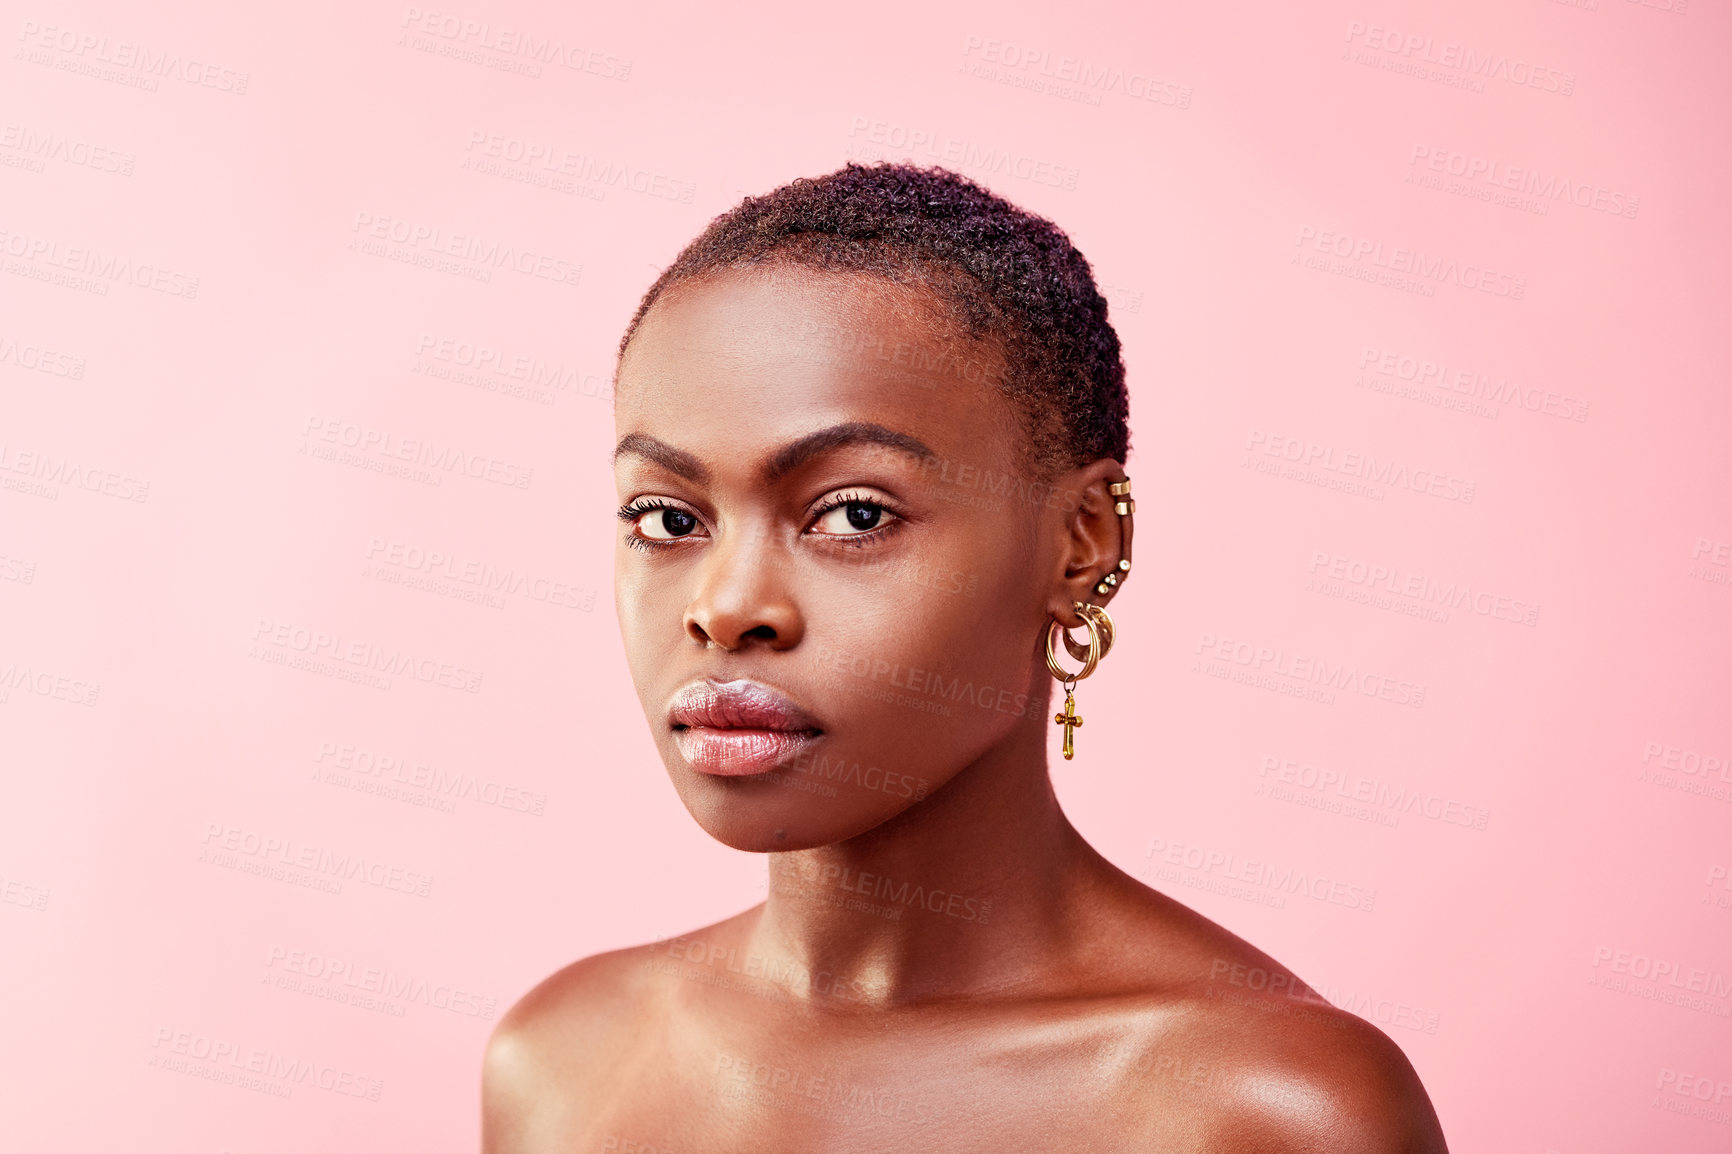 Buy stock photo Studio portrait of a beautiful young woman posing against a pink background